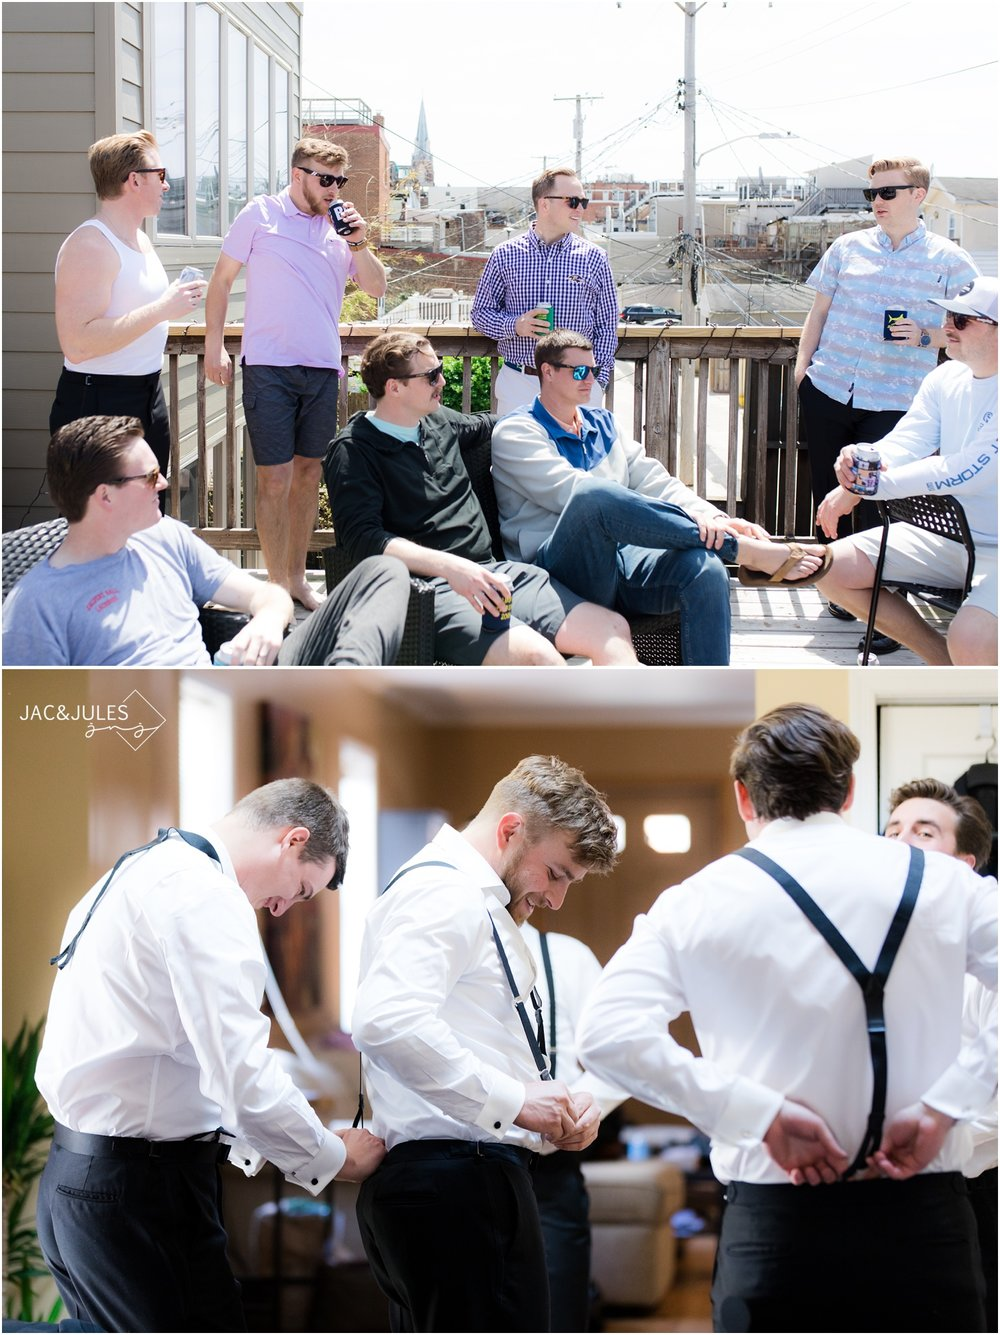 Groomsmen hanging on the deck before a wedding in Baltimore, MD.